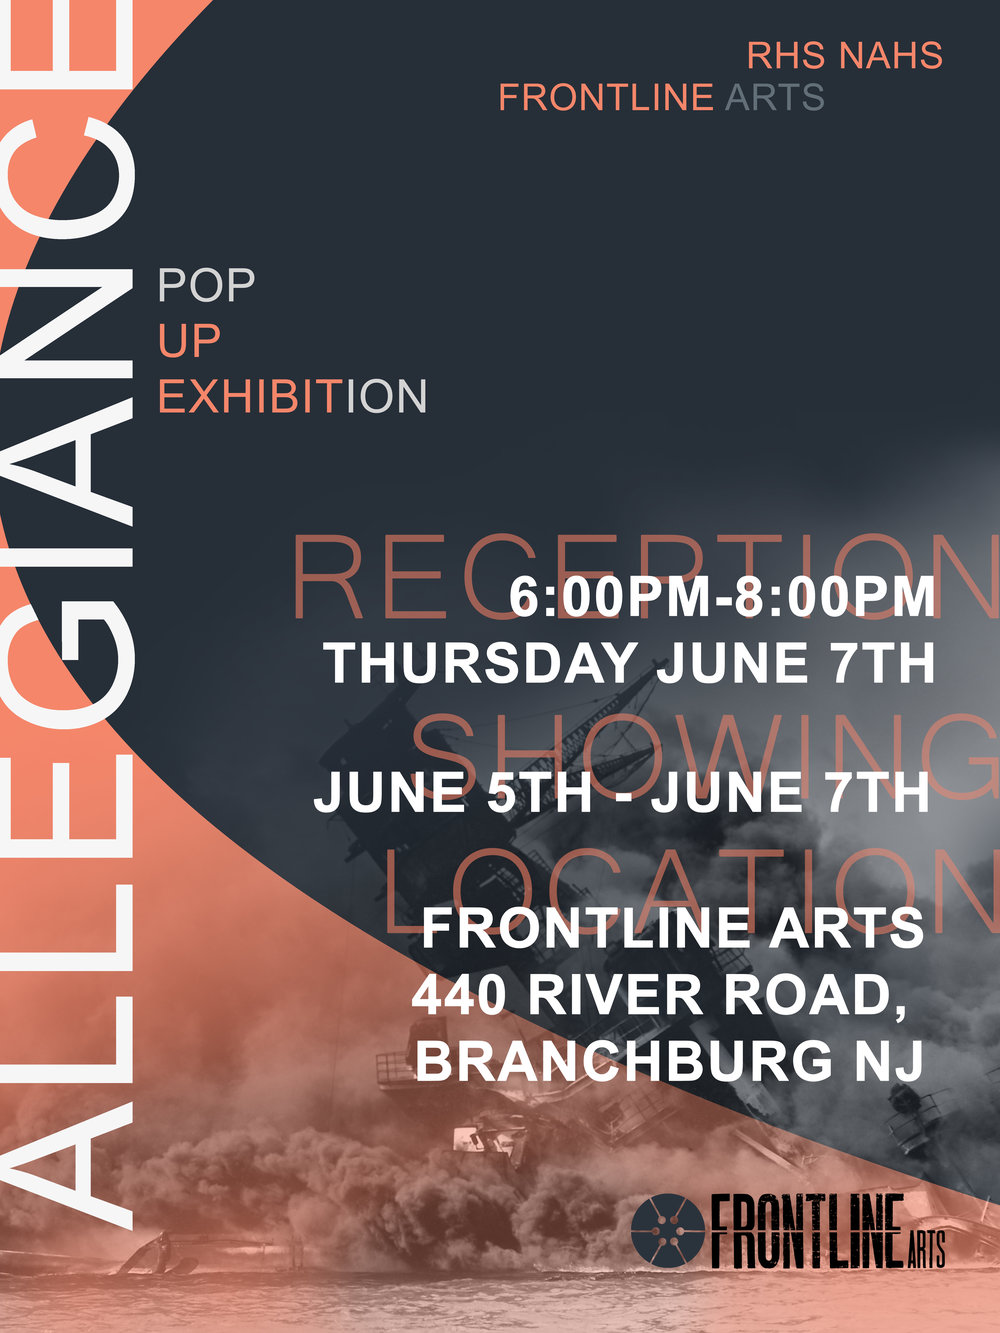 exhibition dates: june 5-8th, 2018 opening reception: thursday june 7th from 6:00-8:00pm -